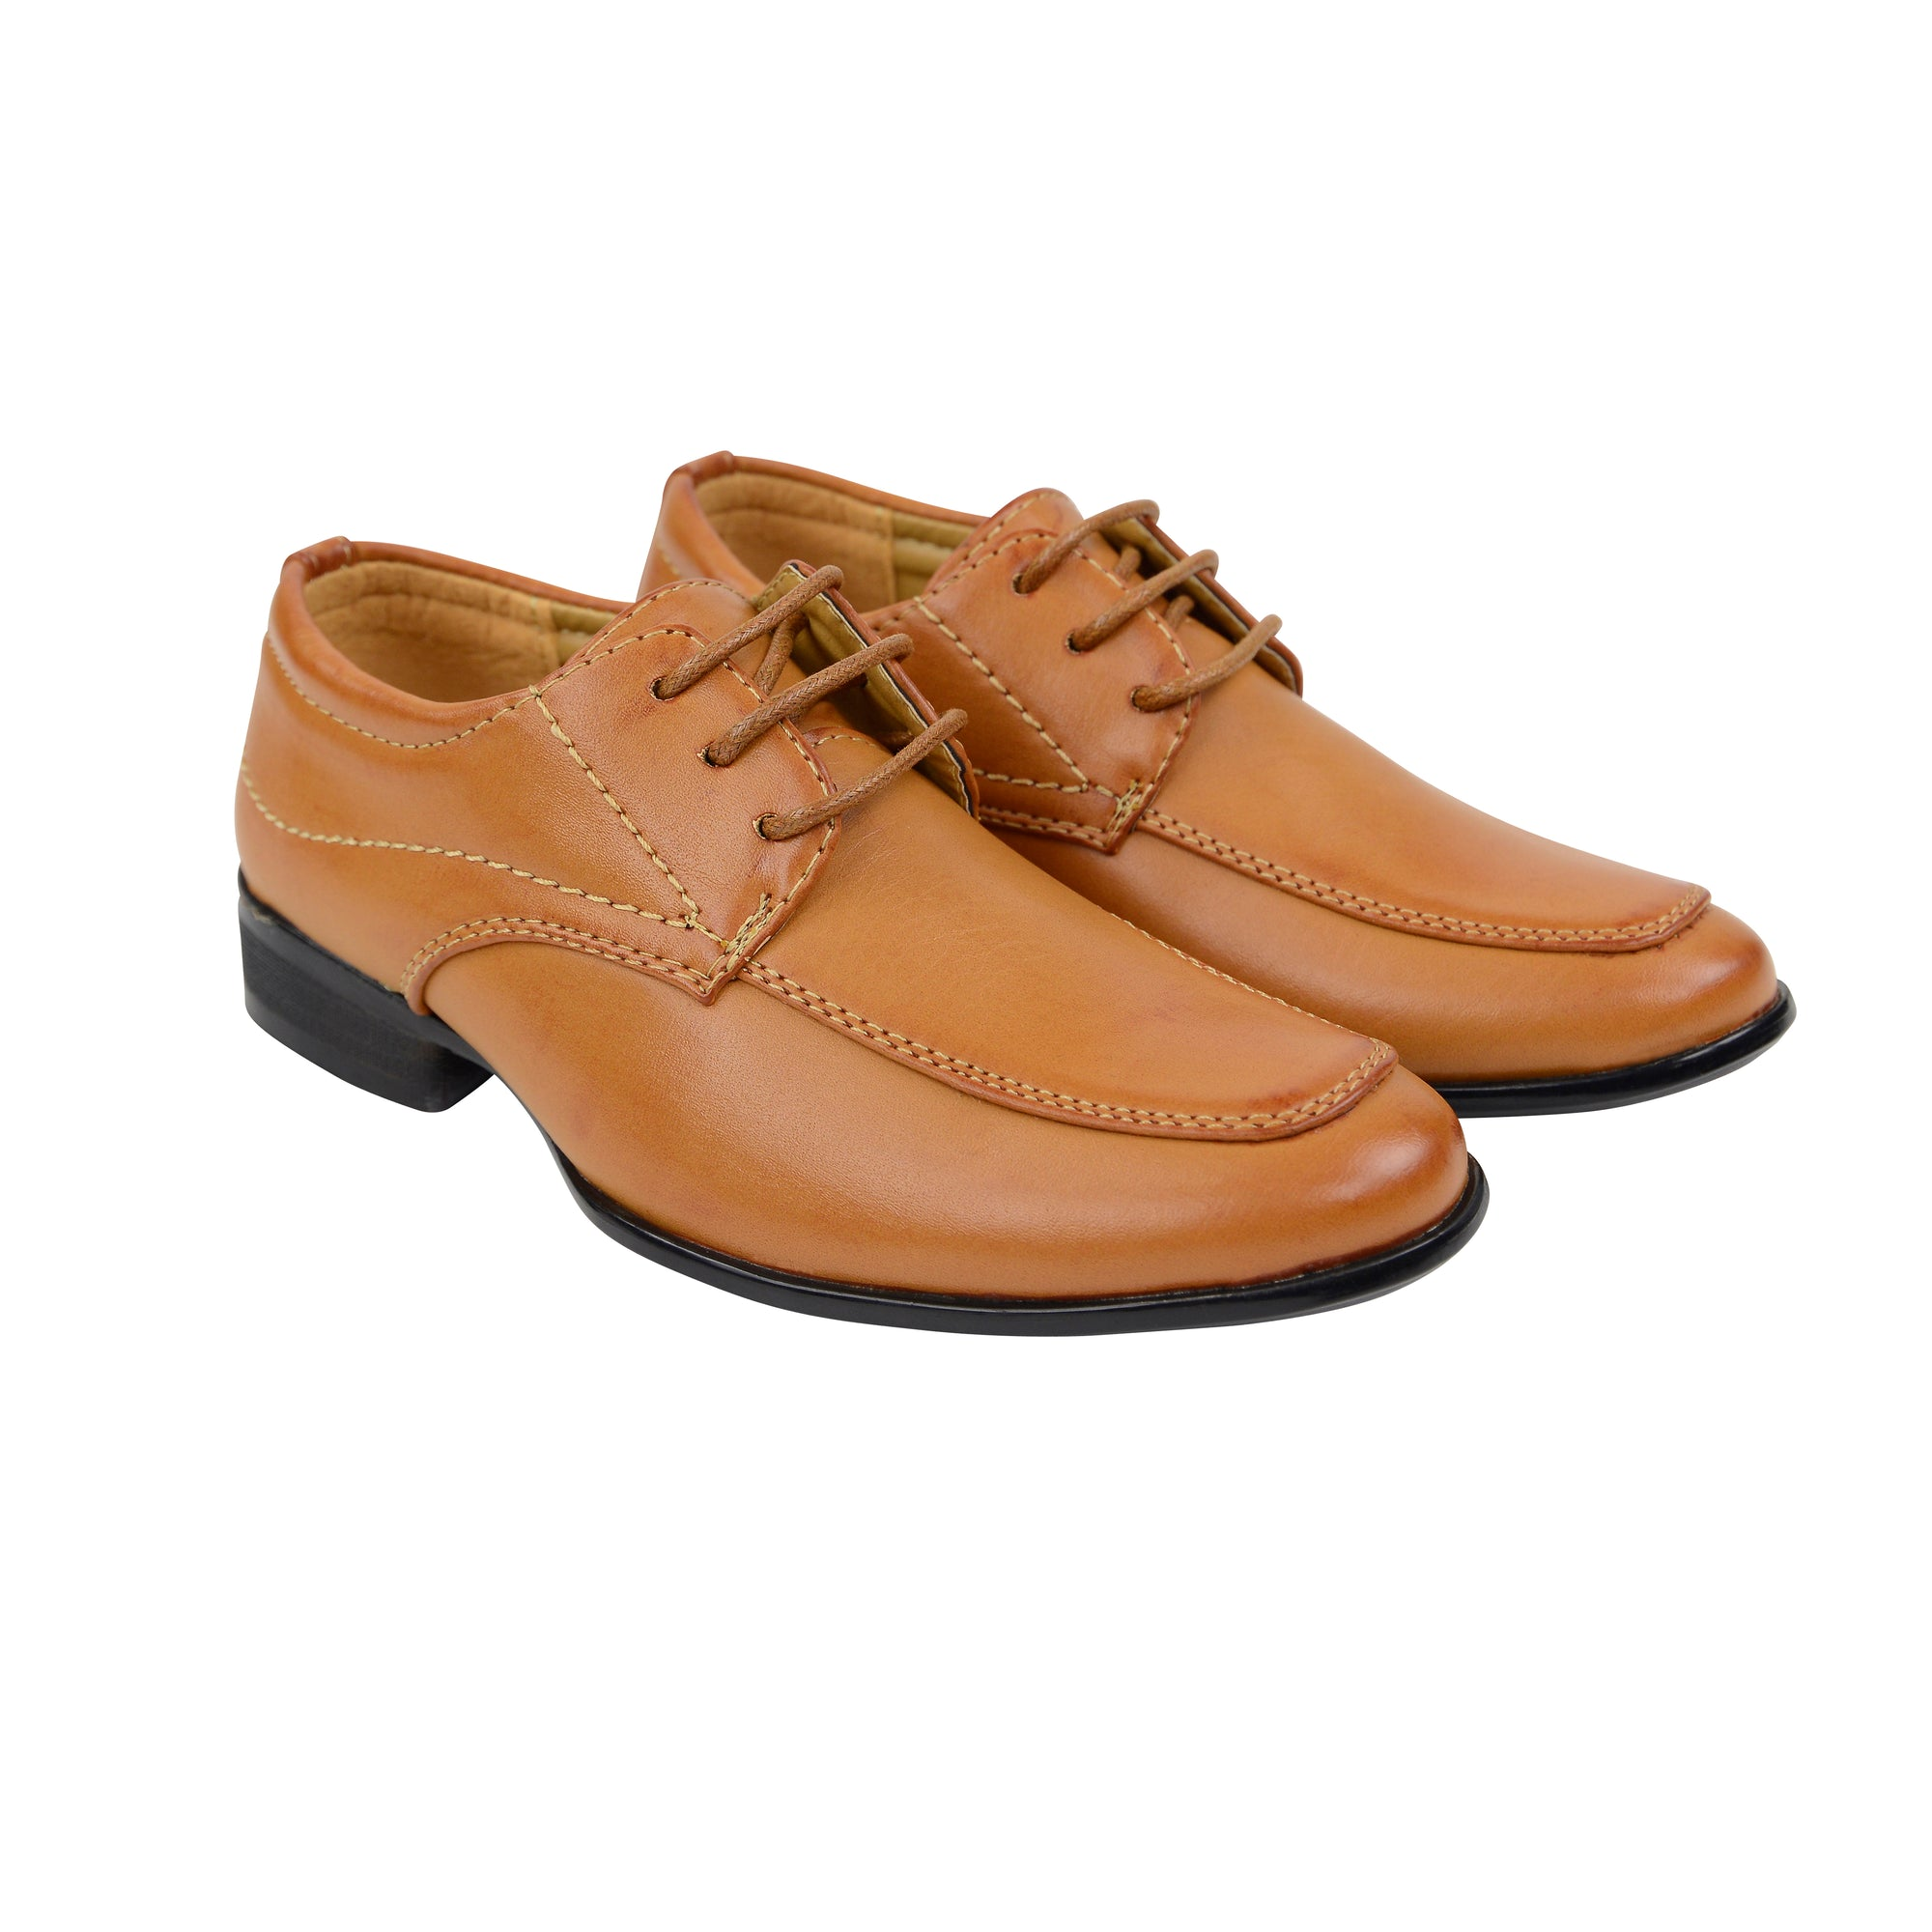 Boys Lace Up Shoes - Tan